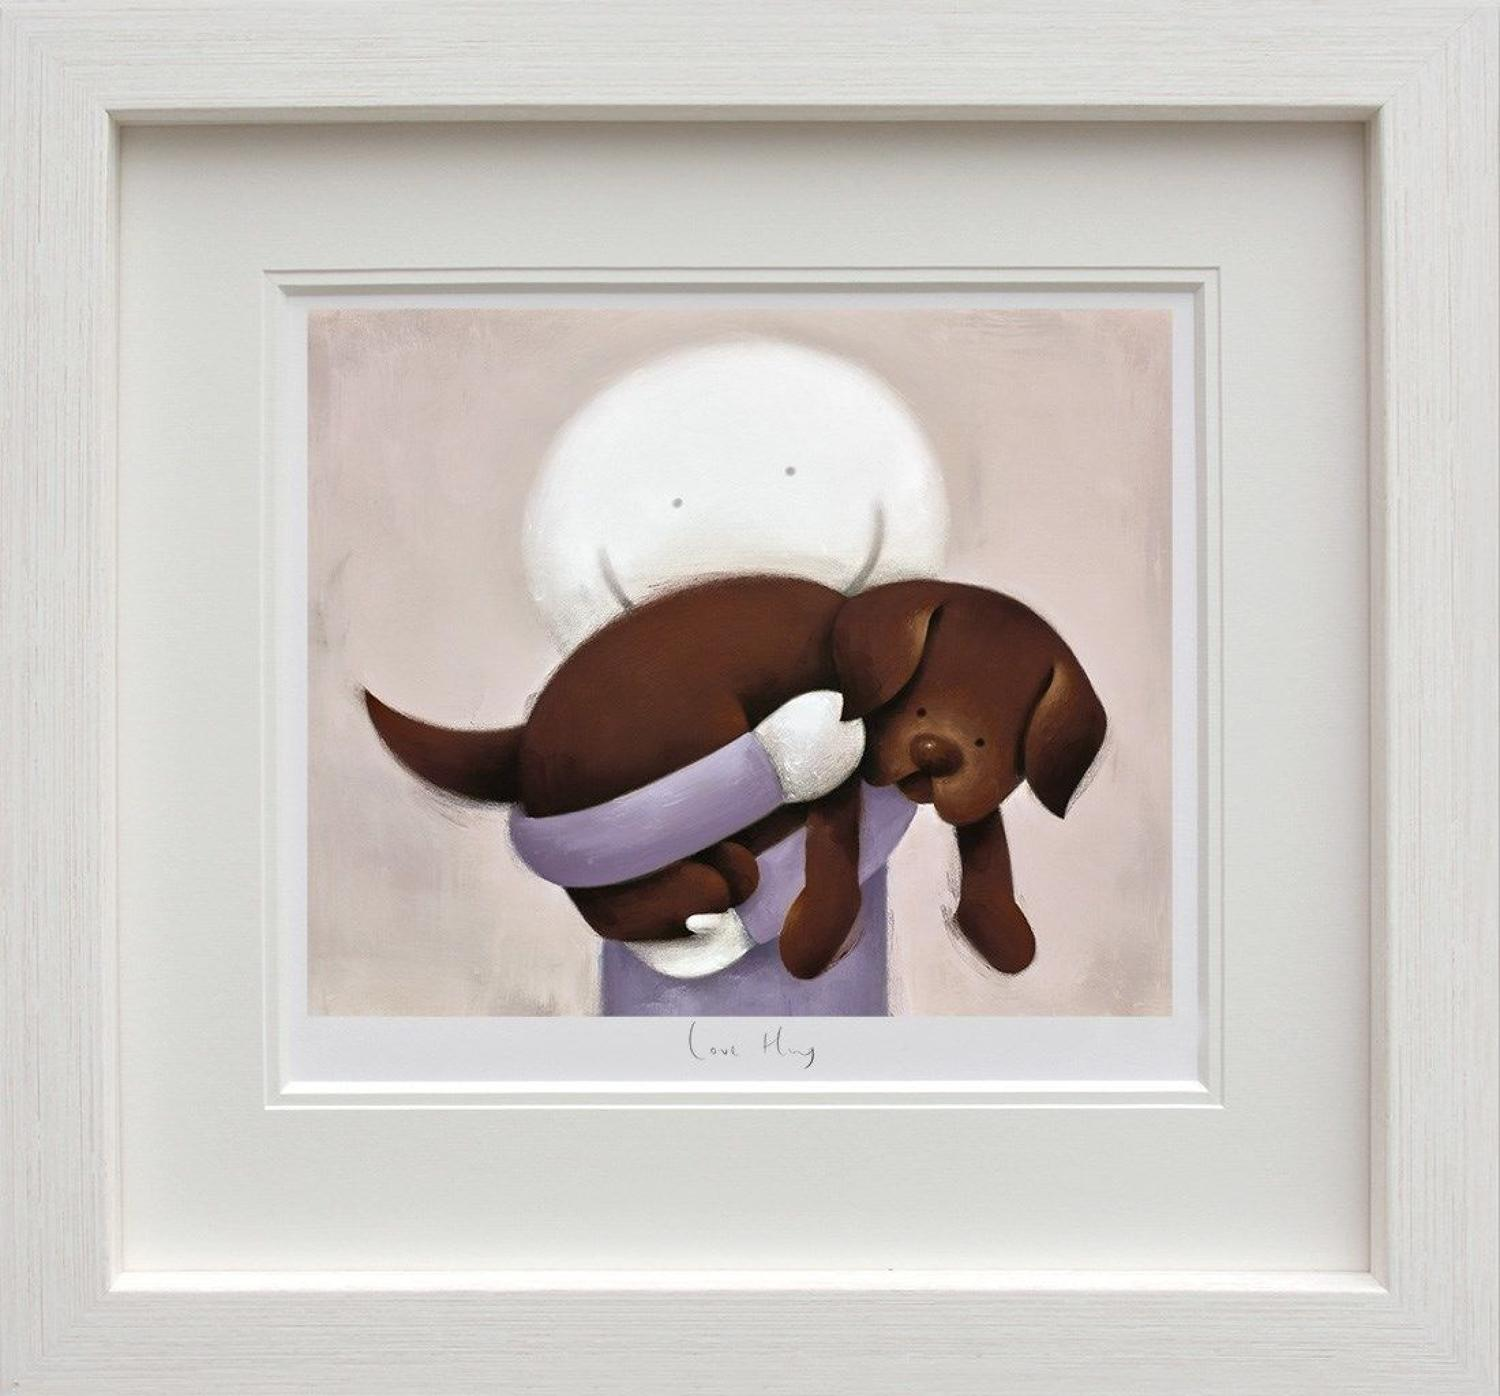 'Love Hug'- Doug Hyde Framed Art Print